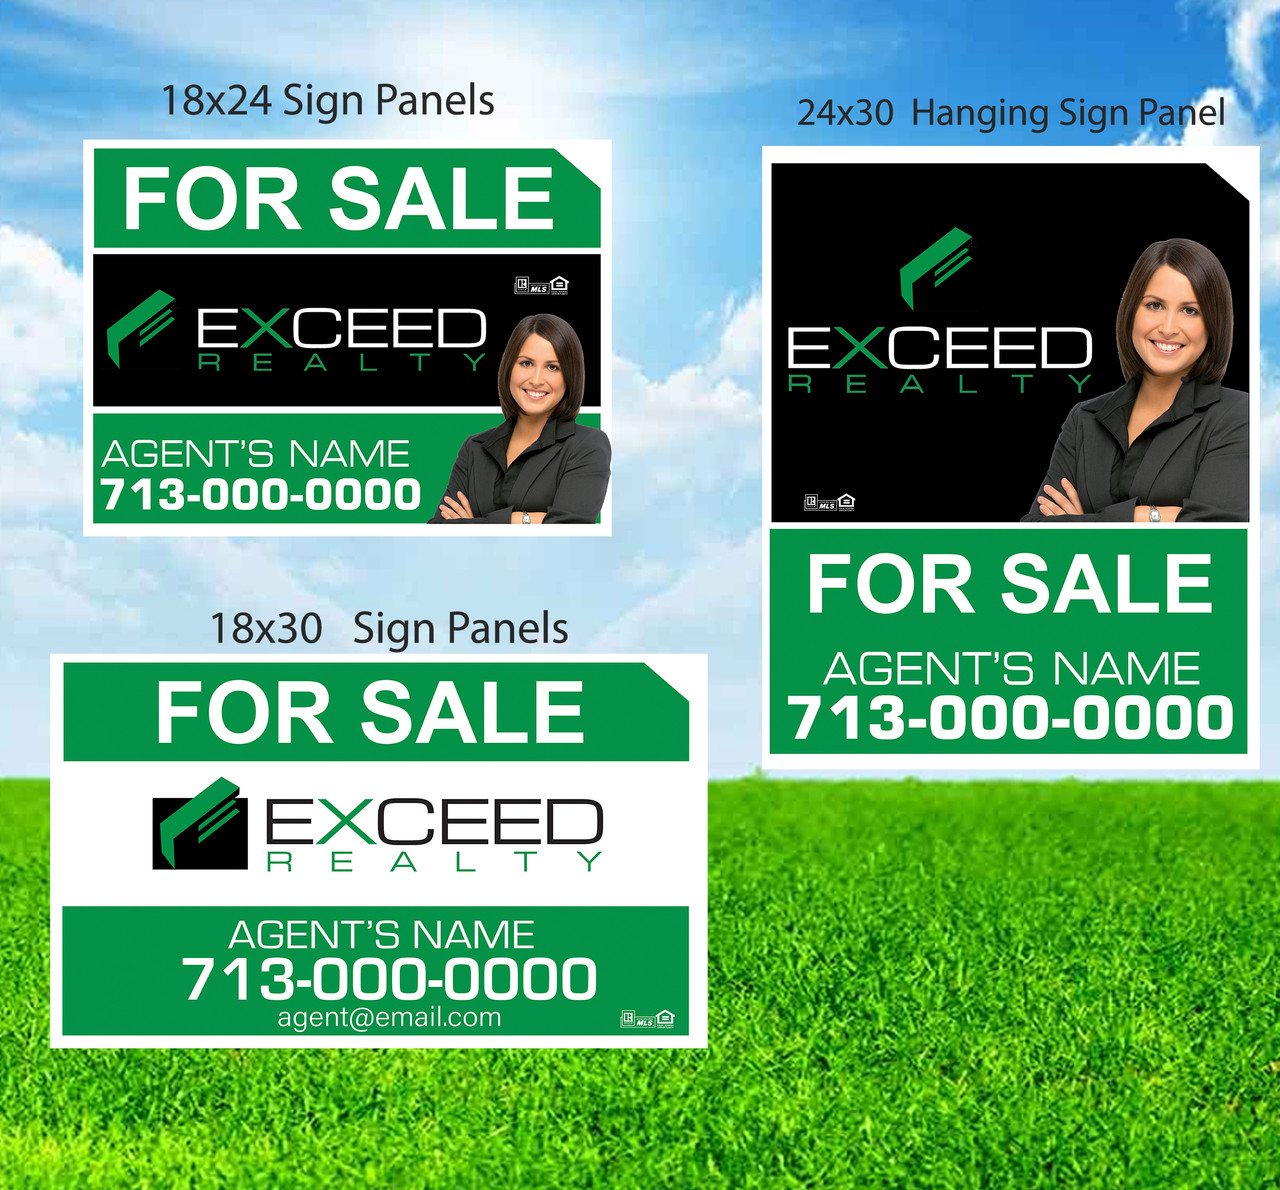 Exceed Sign Panels